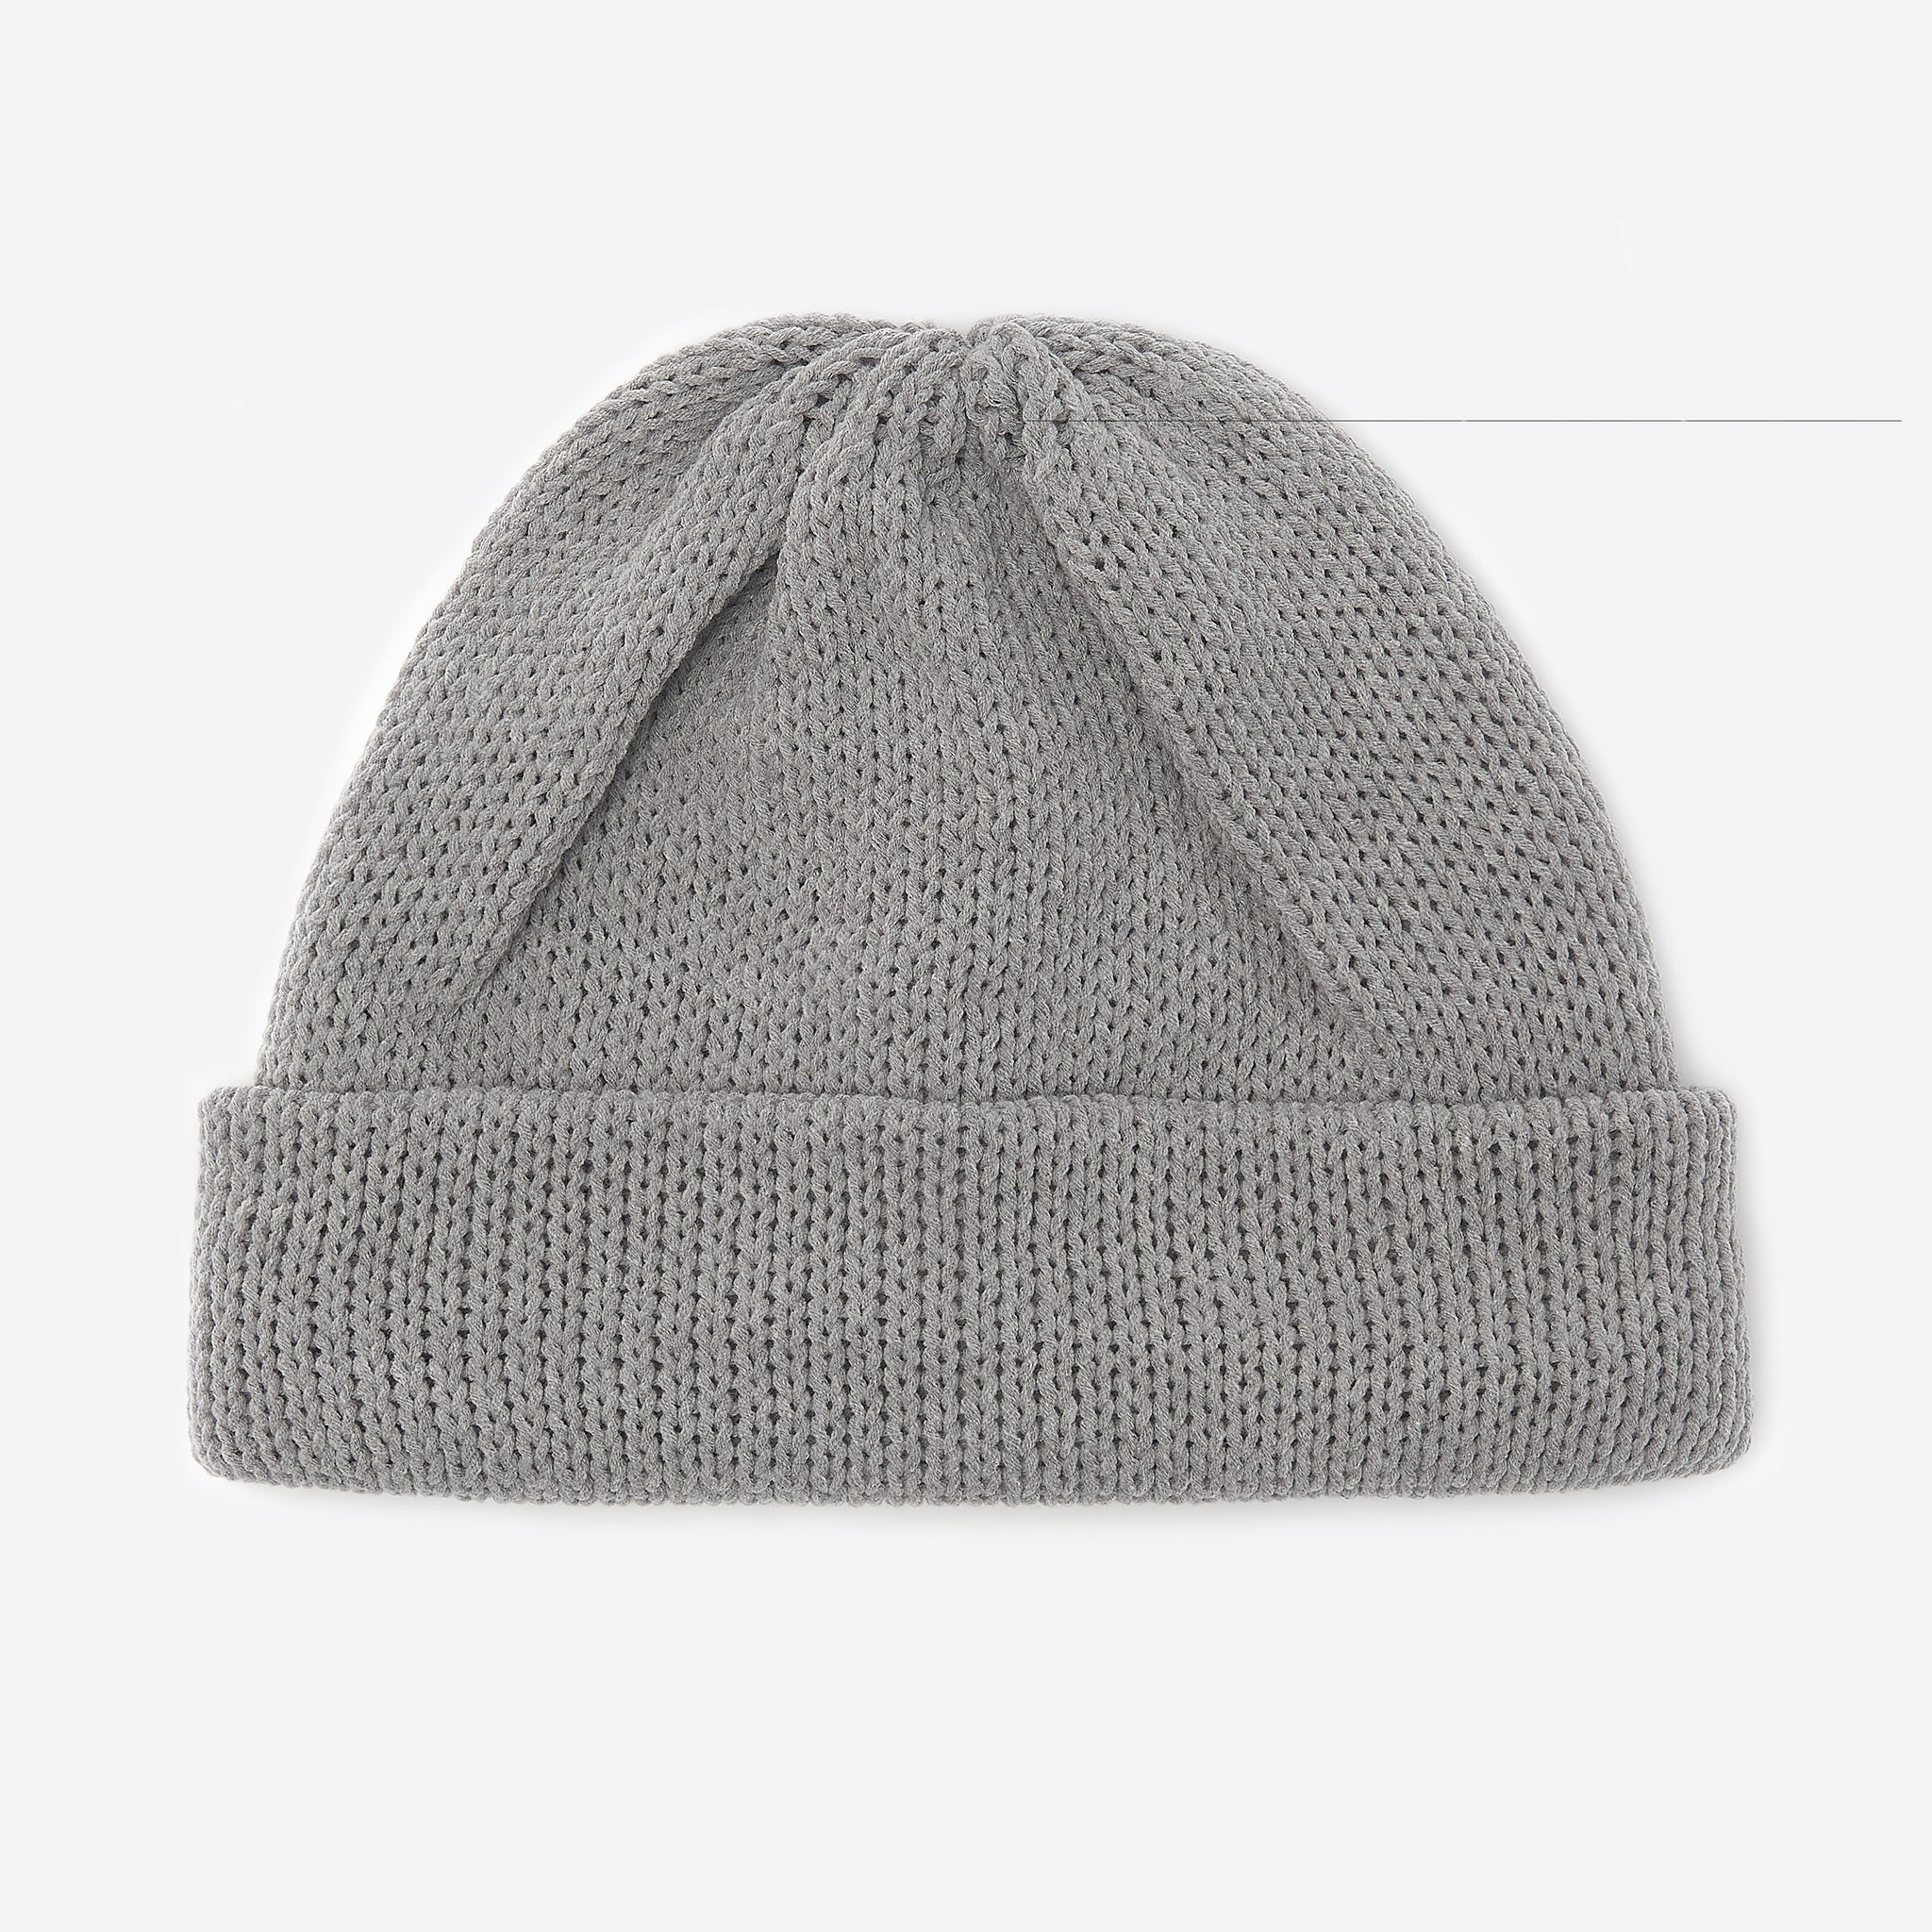 RoToTo 3 Gauge Watch Cap in Mid Grey